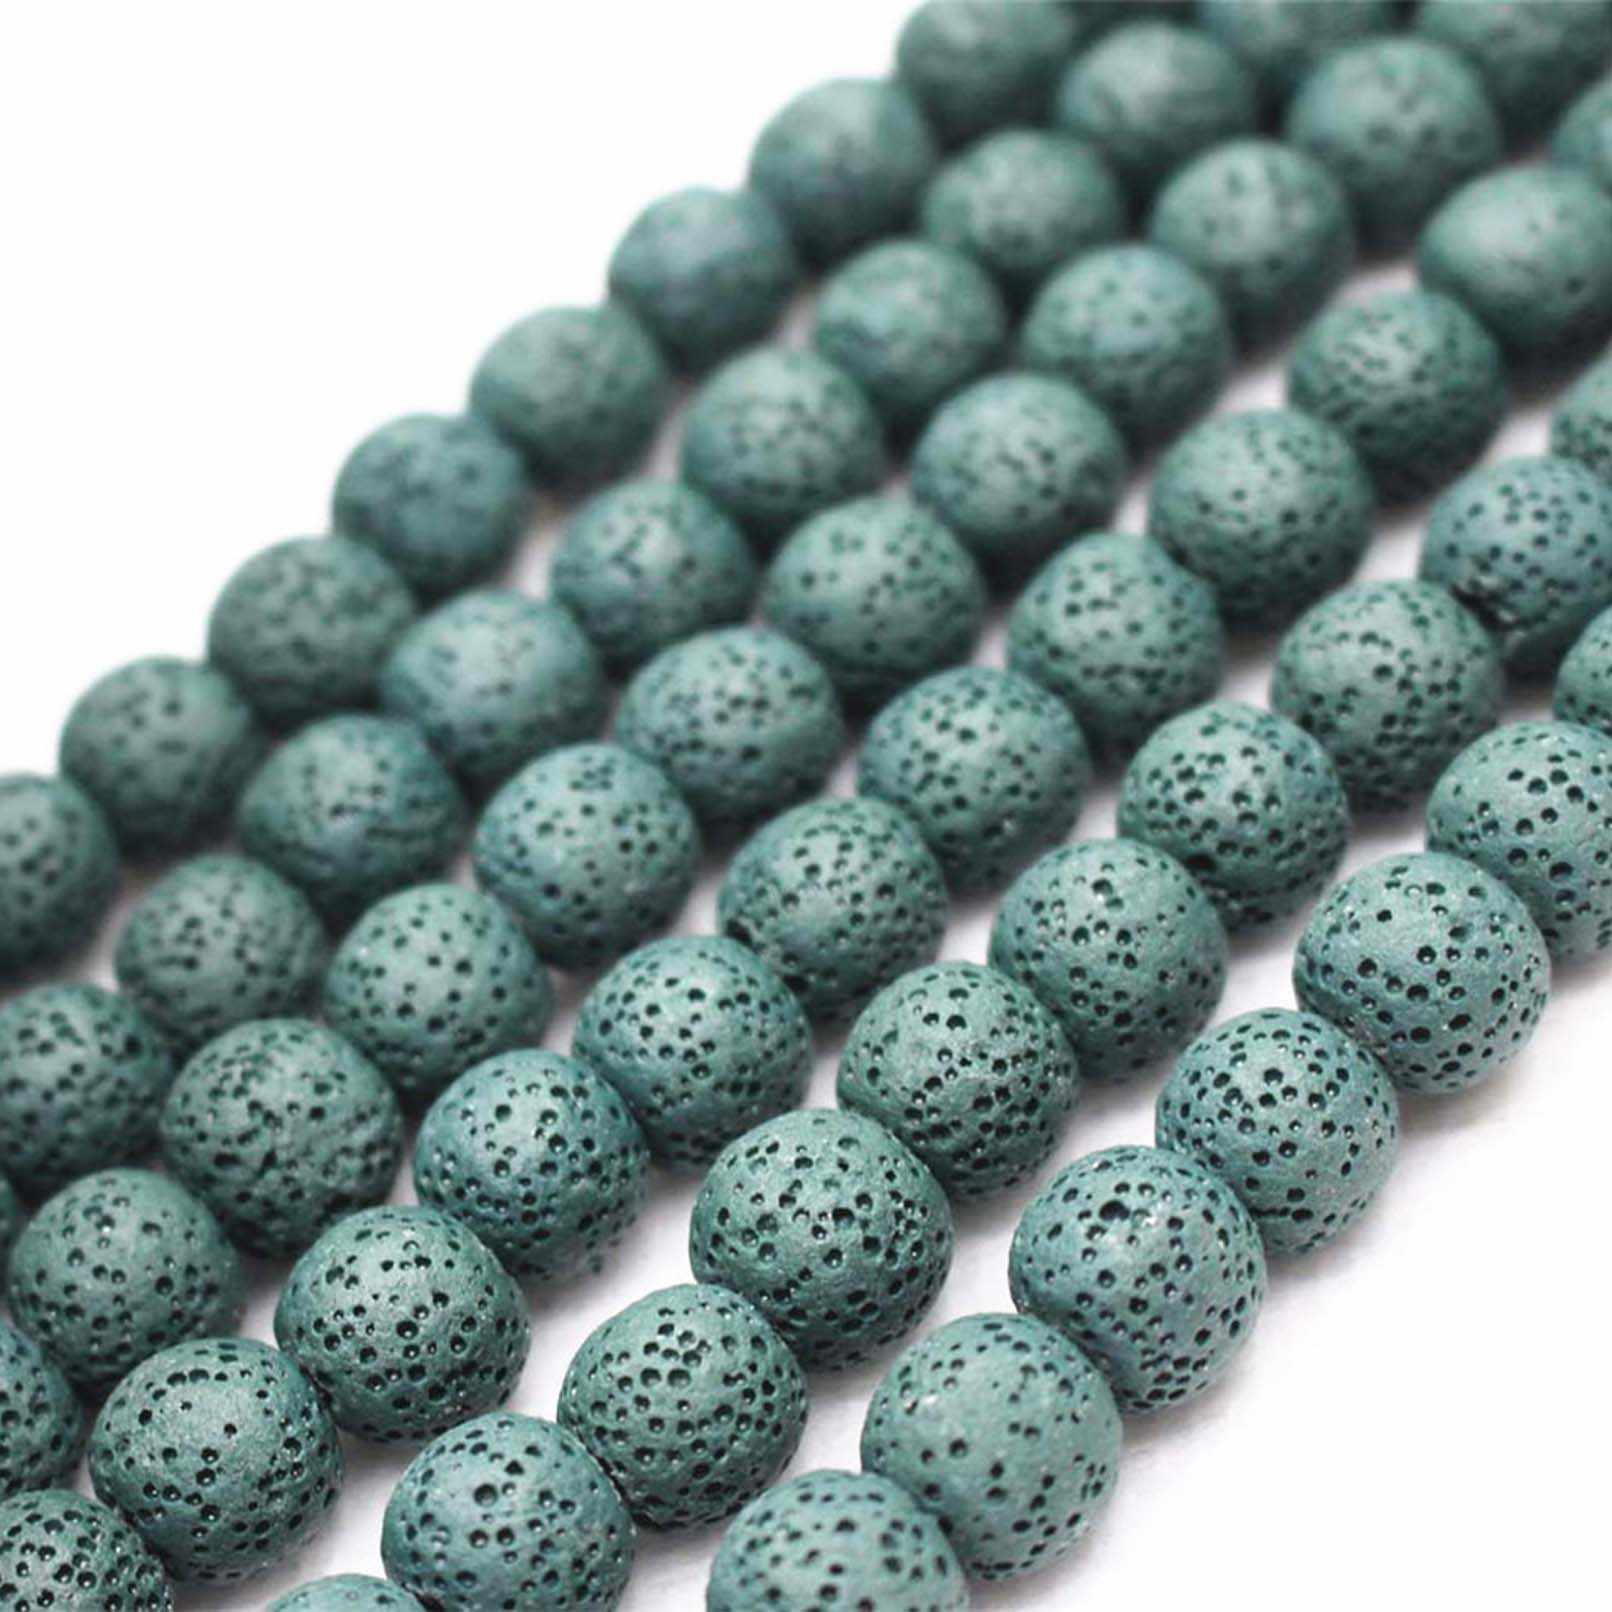 Wholesale Natural Lava Loose Beads,4mm 6mm 8mm 10mm 12mm 14mm 16mm Volcanic Rock Lava Round Beads.DIY Jewelry Making Beads